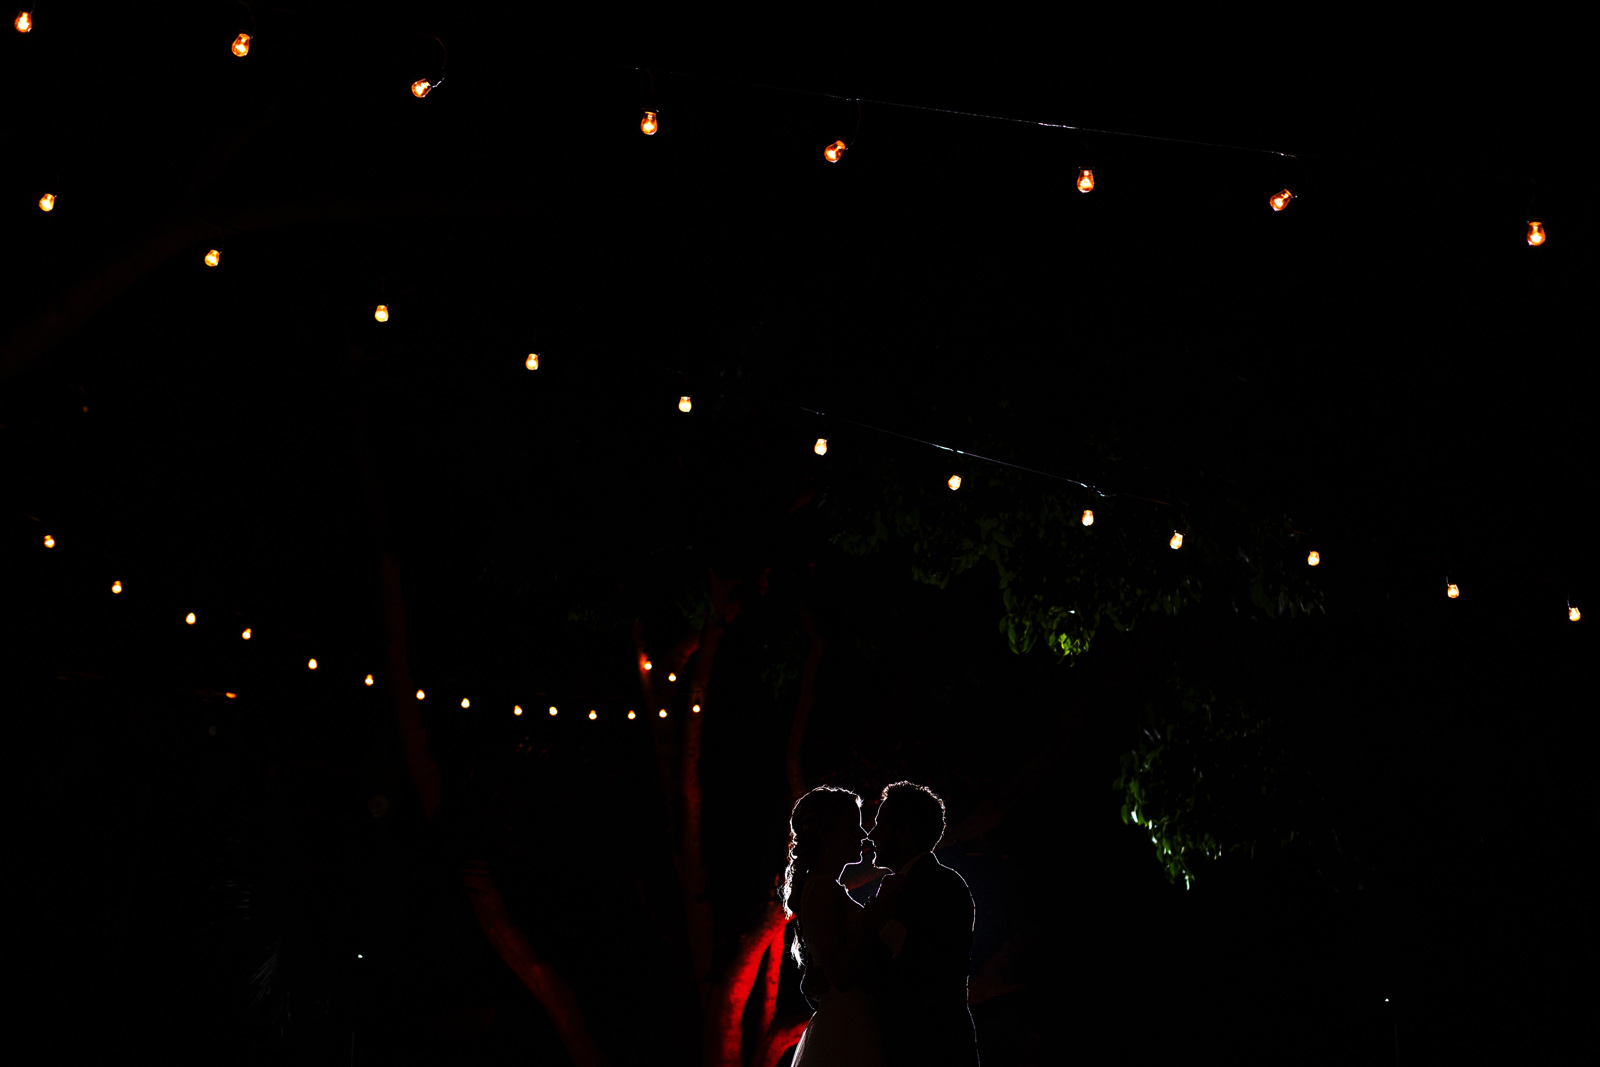 Silhouettes of groom and bride during their first dance with hanging light bulbs